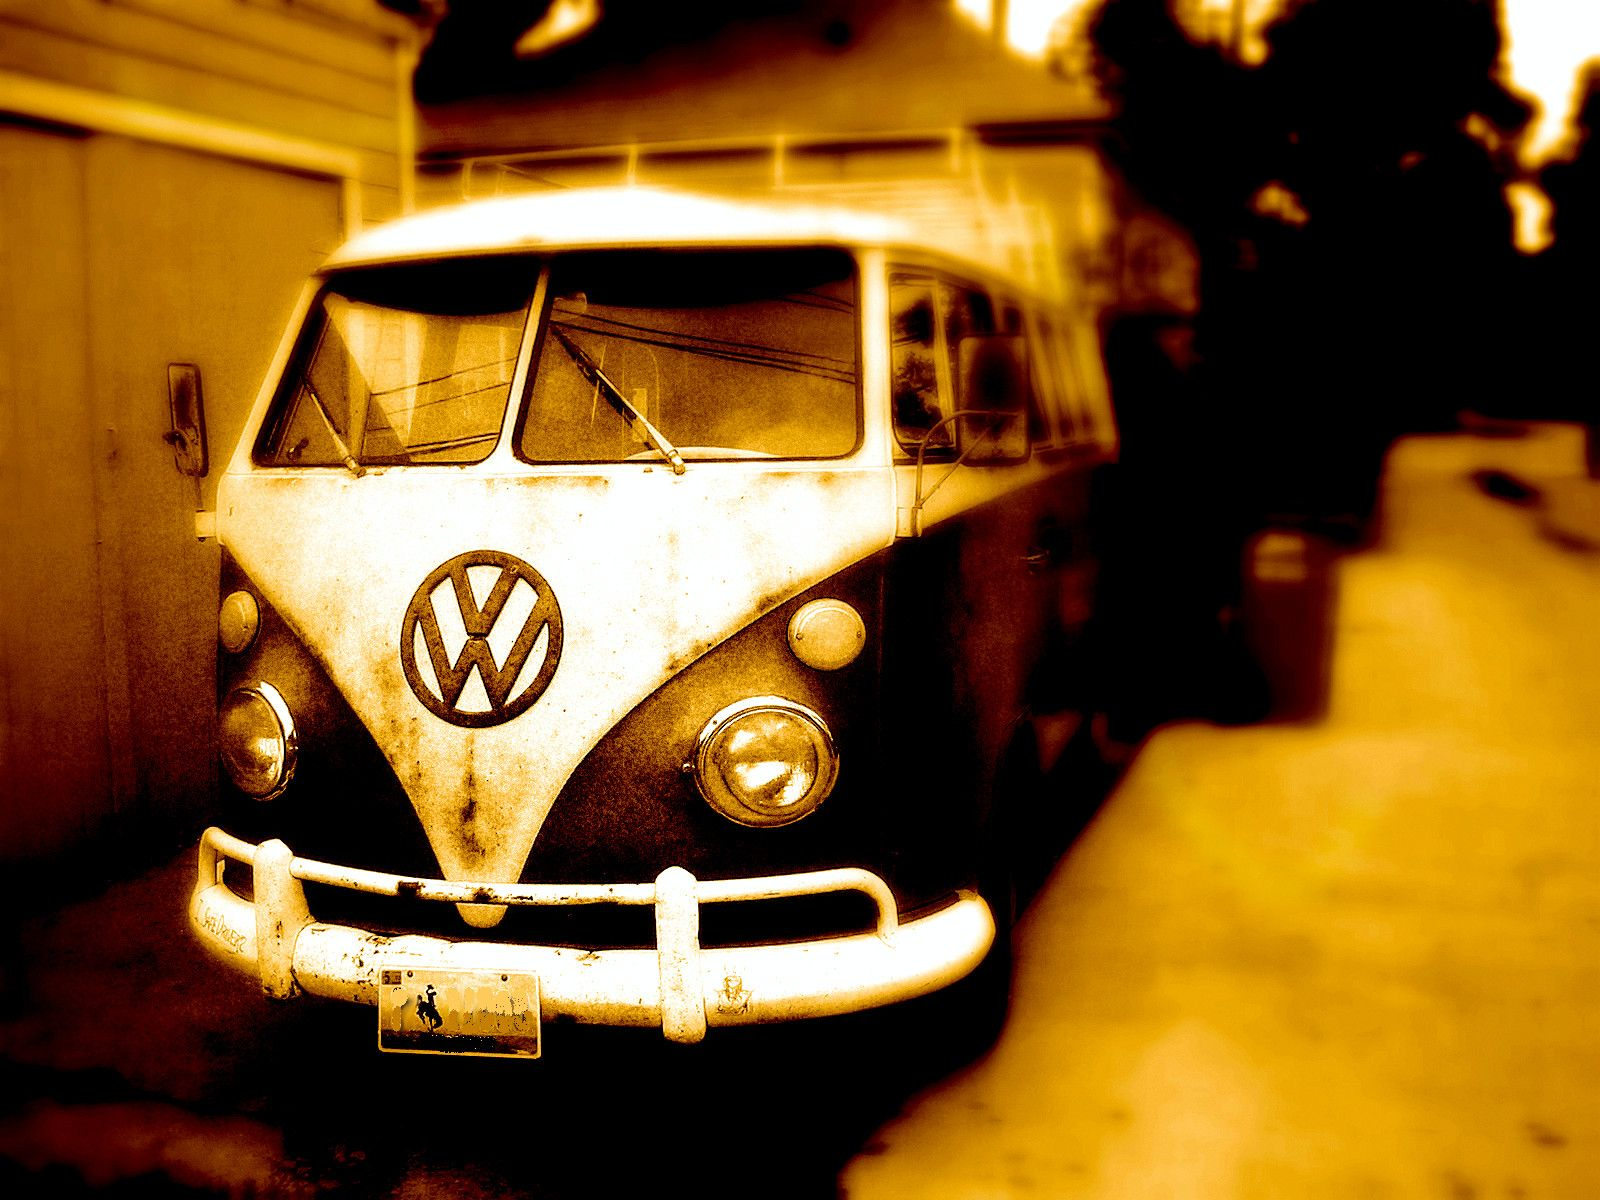 Vw Bus Wallpapers HD Wallpapers Base 1600x1200